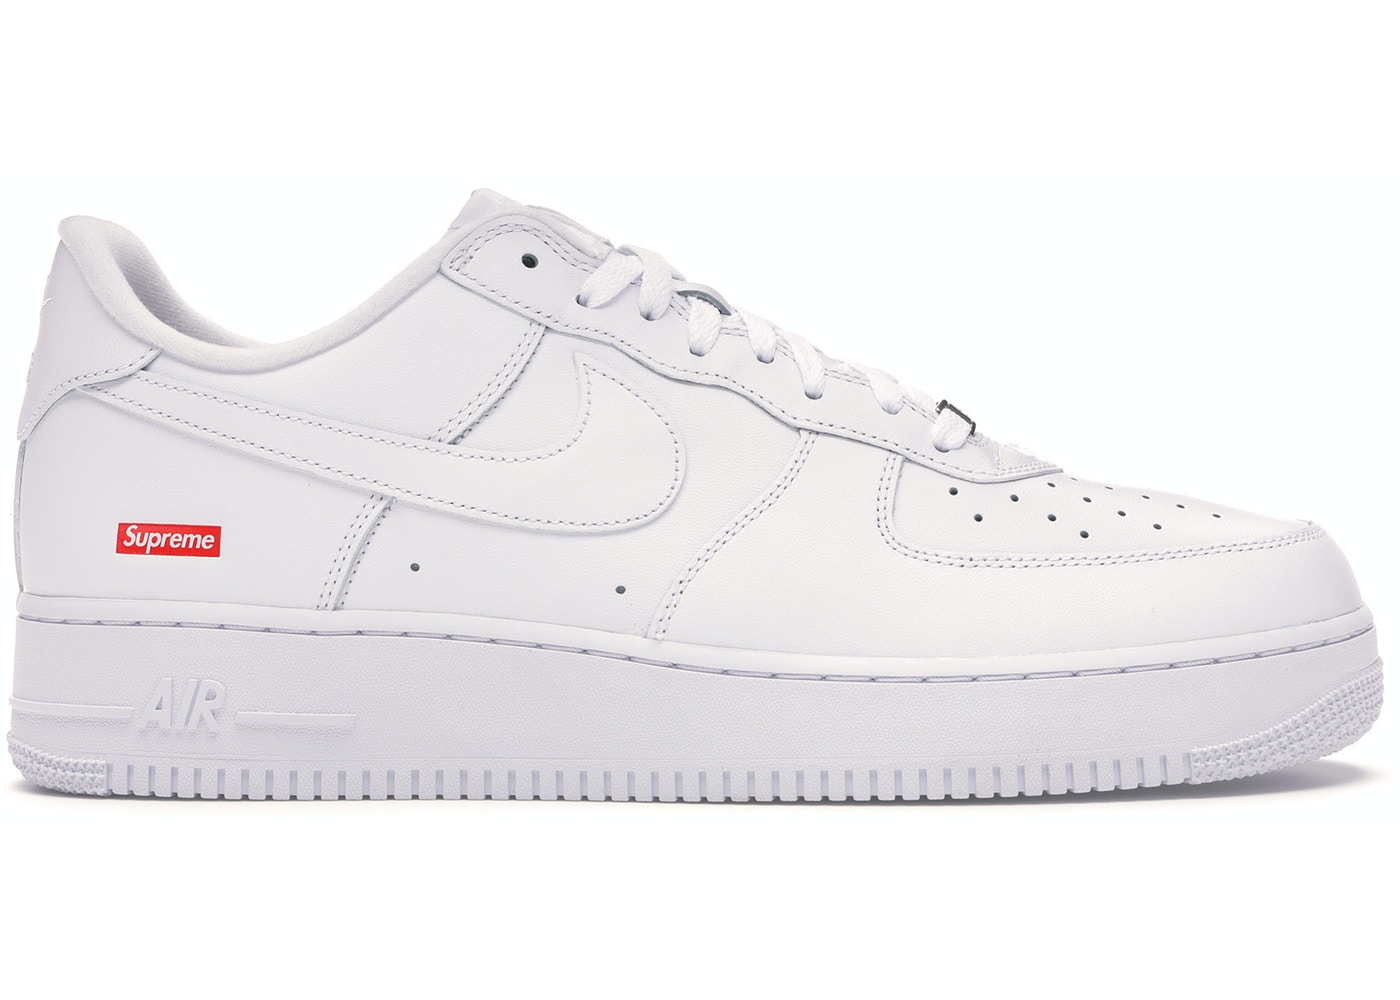 Nike Air Force 1 Low Supreme White Cu9225 100